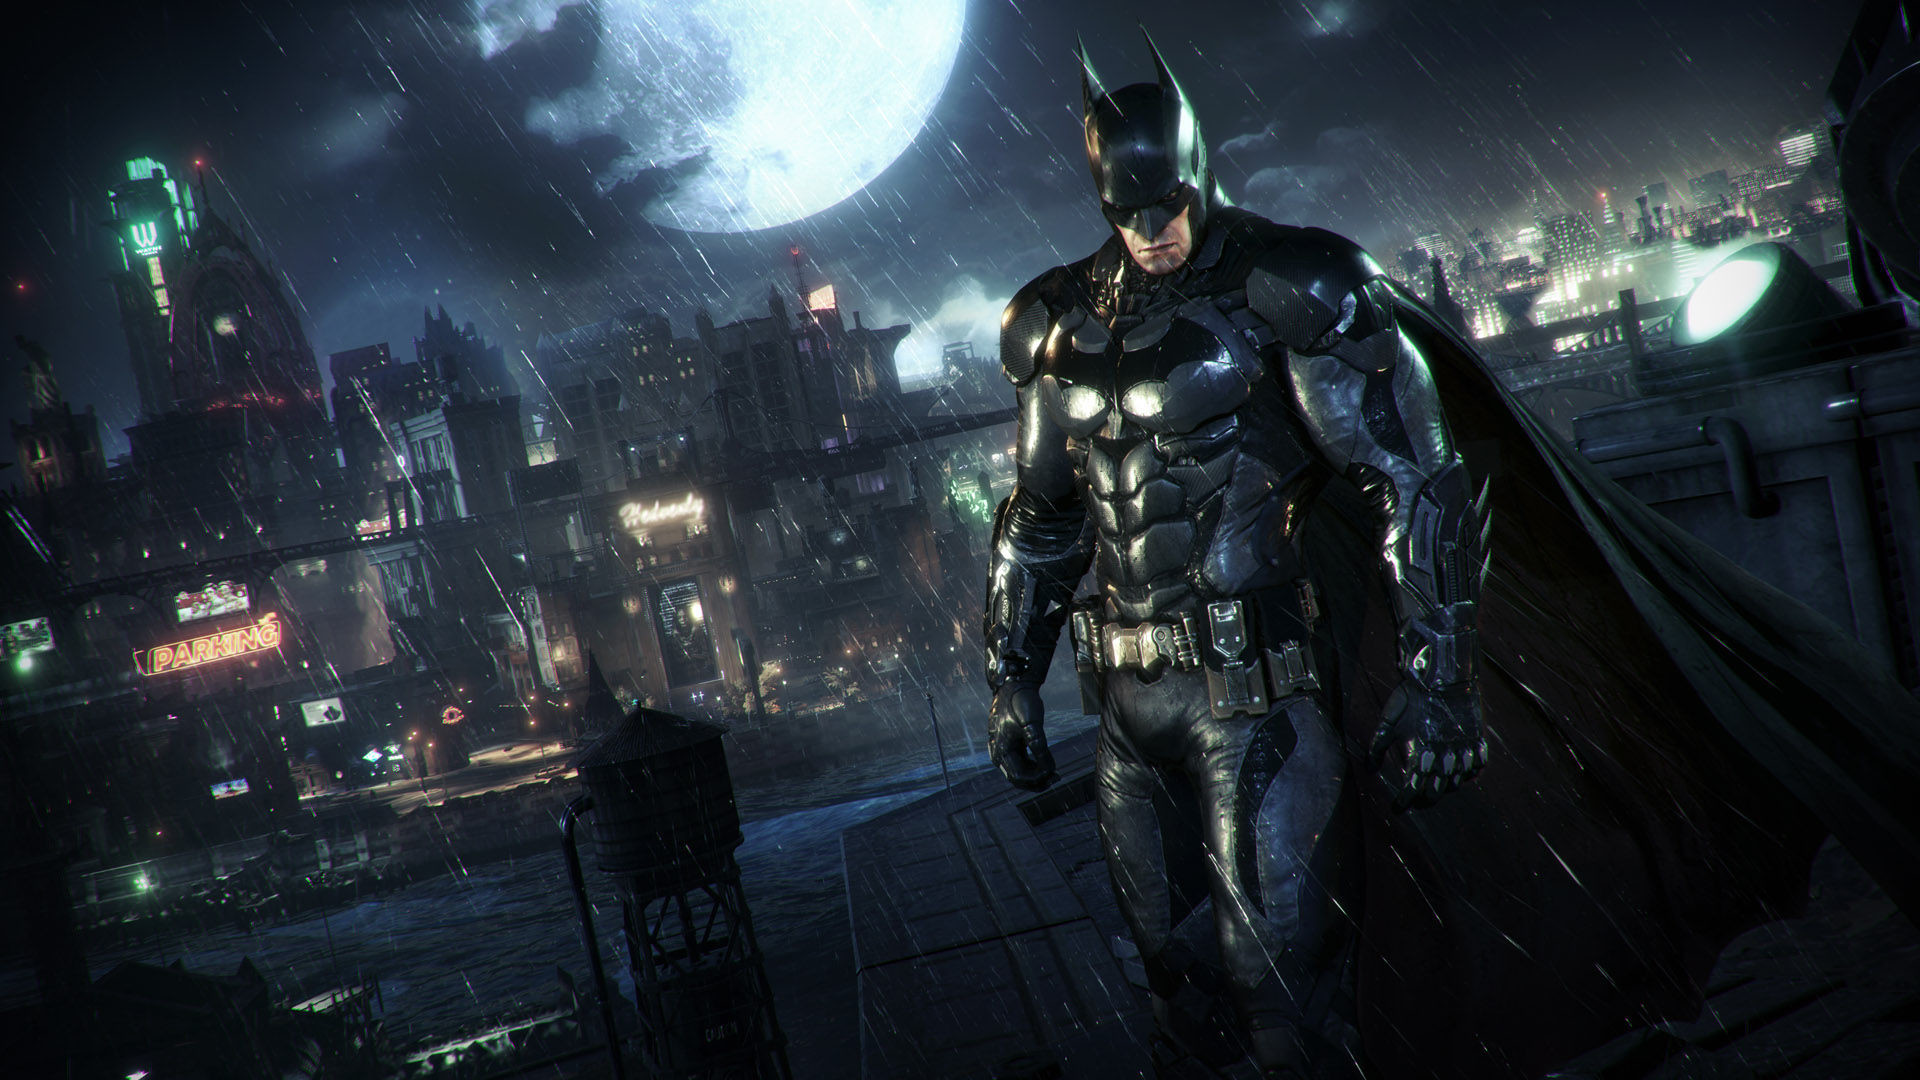 1920x1080 Batman Arkham Knight screenshot